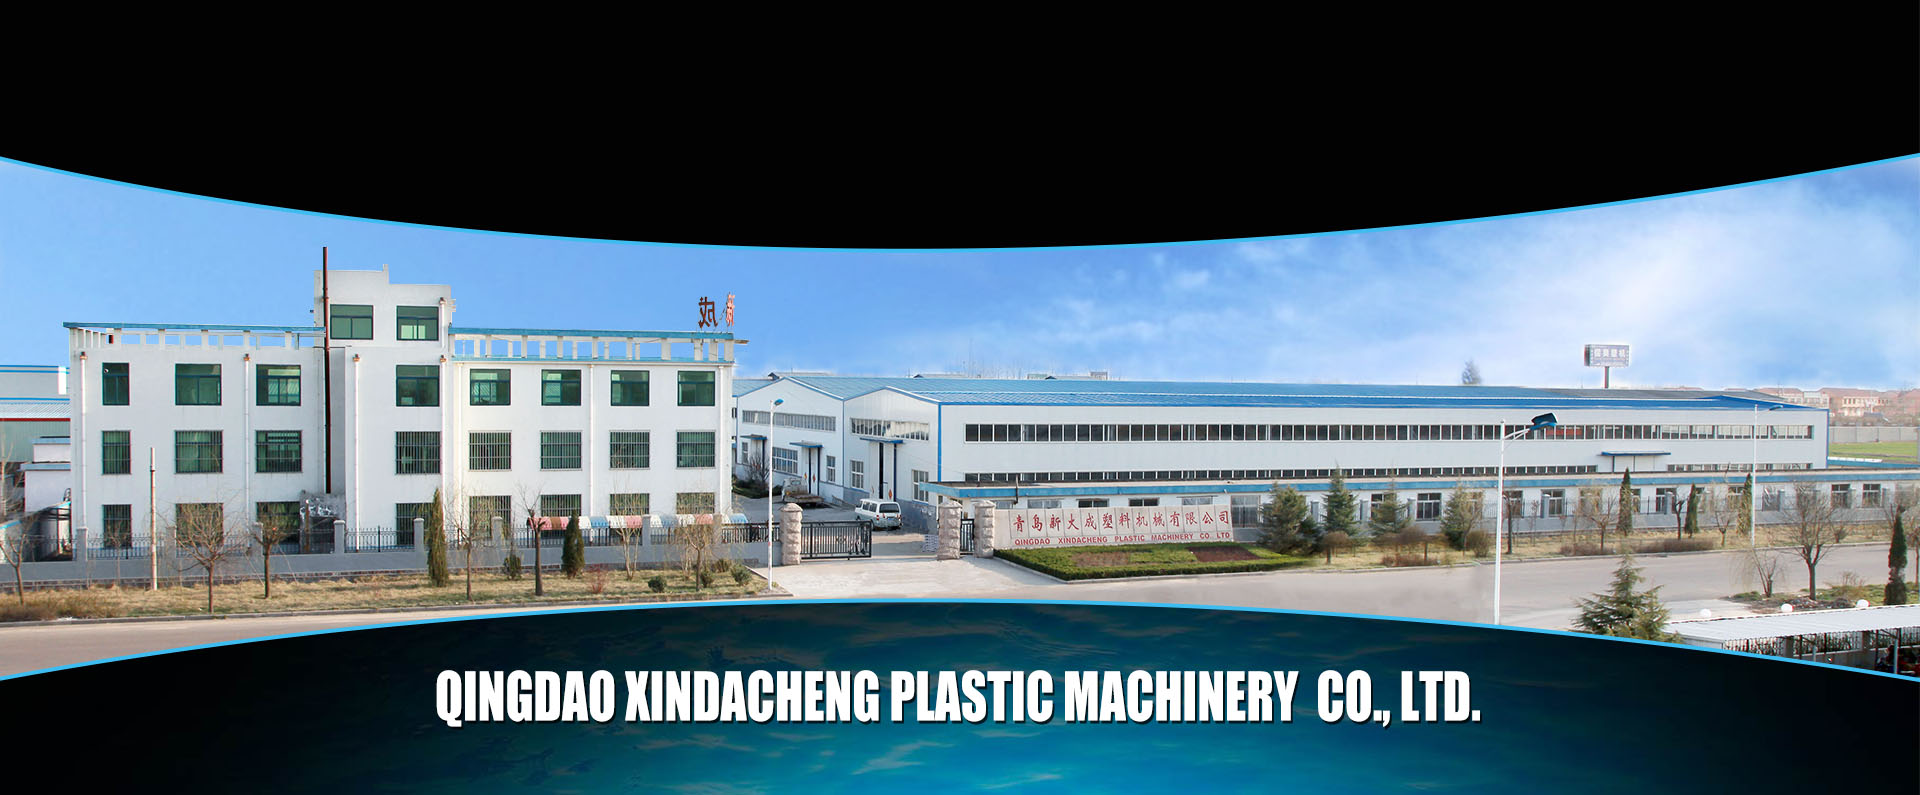 Qingdao Xindacheng Plastic Machinery  CO., LTD.